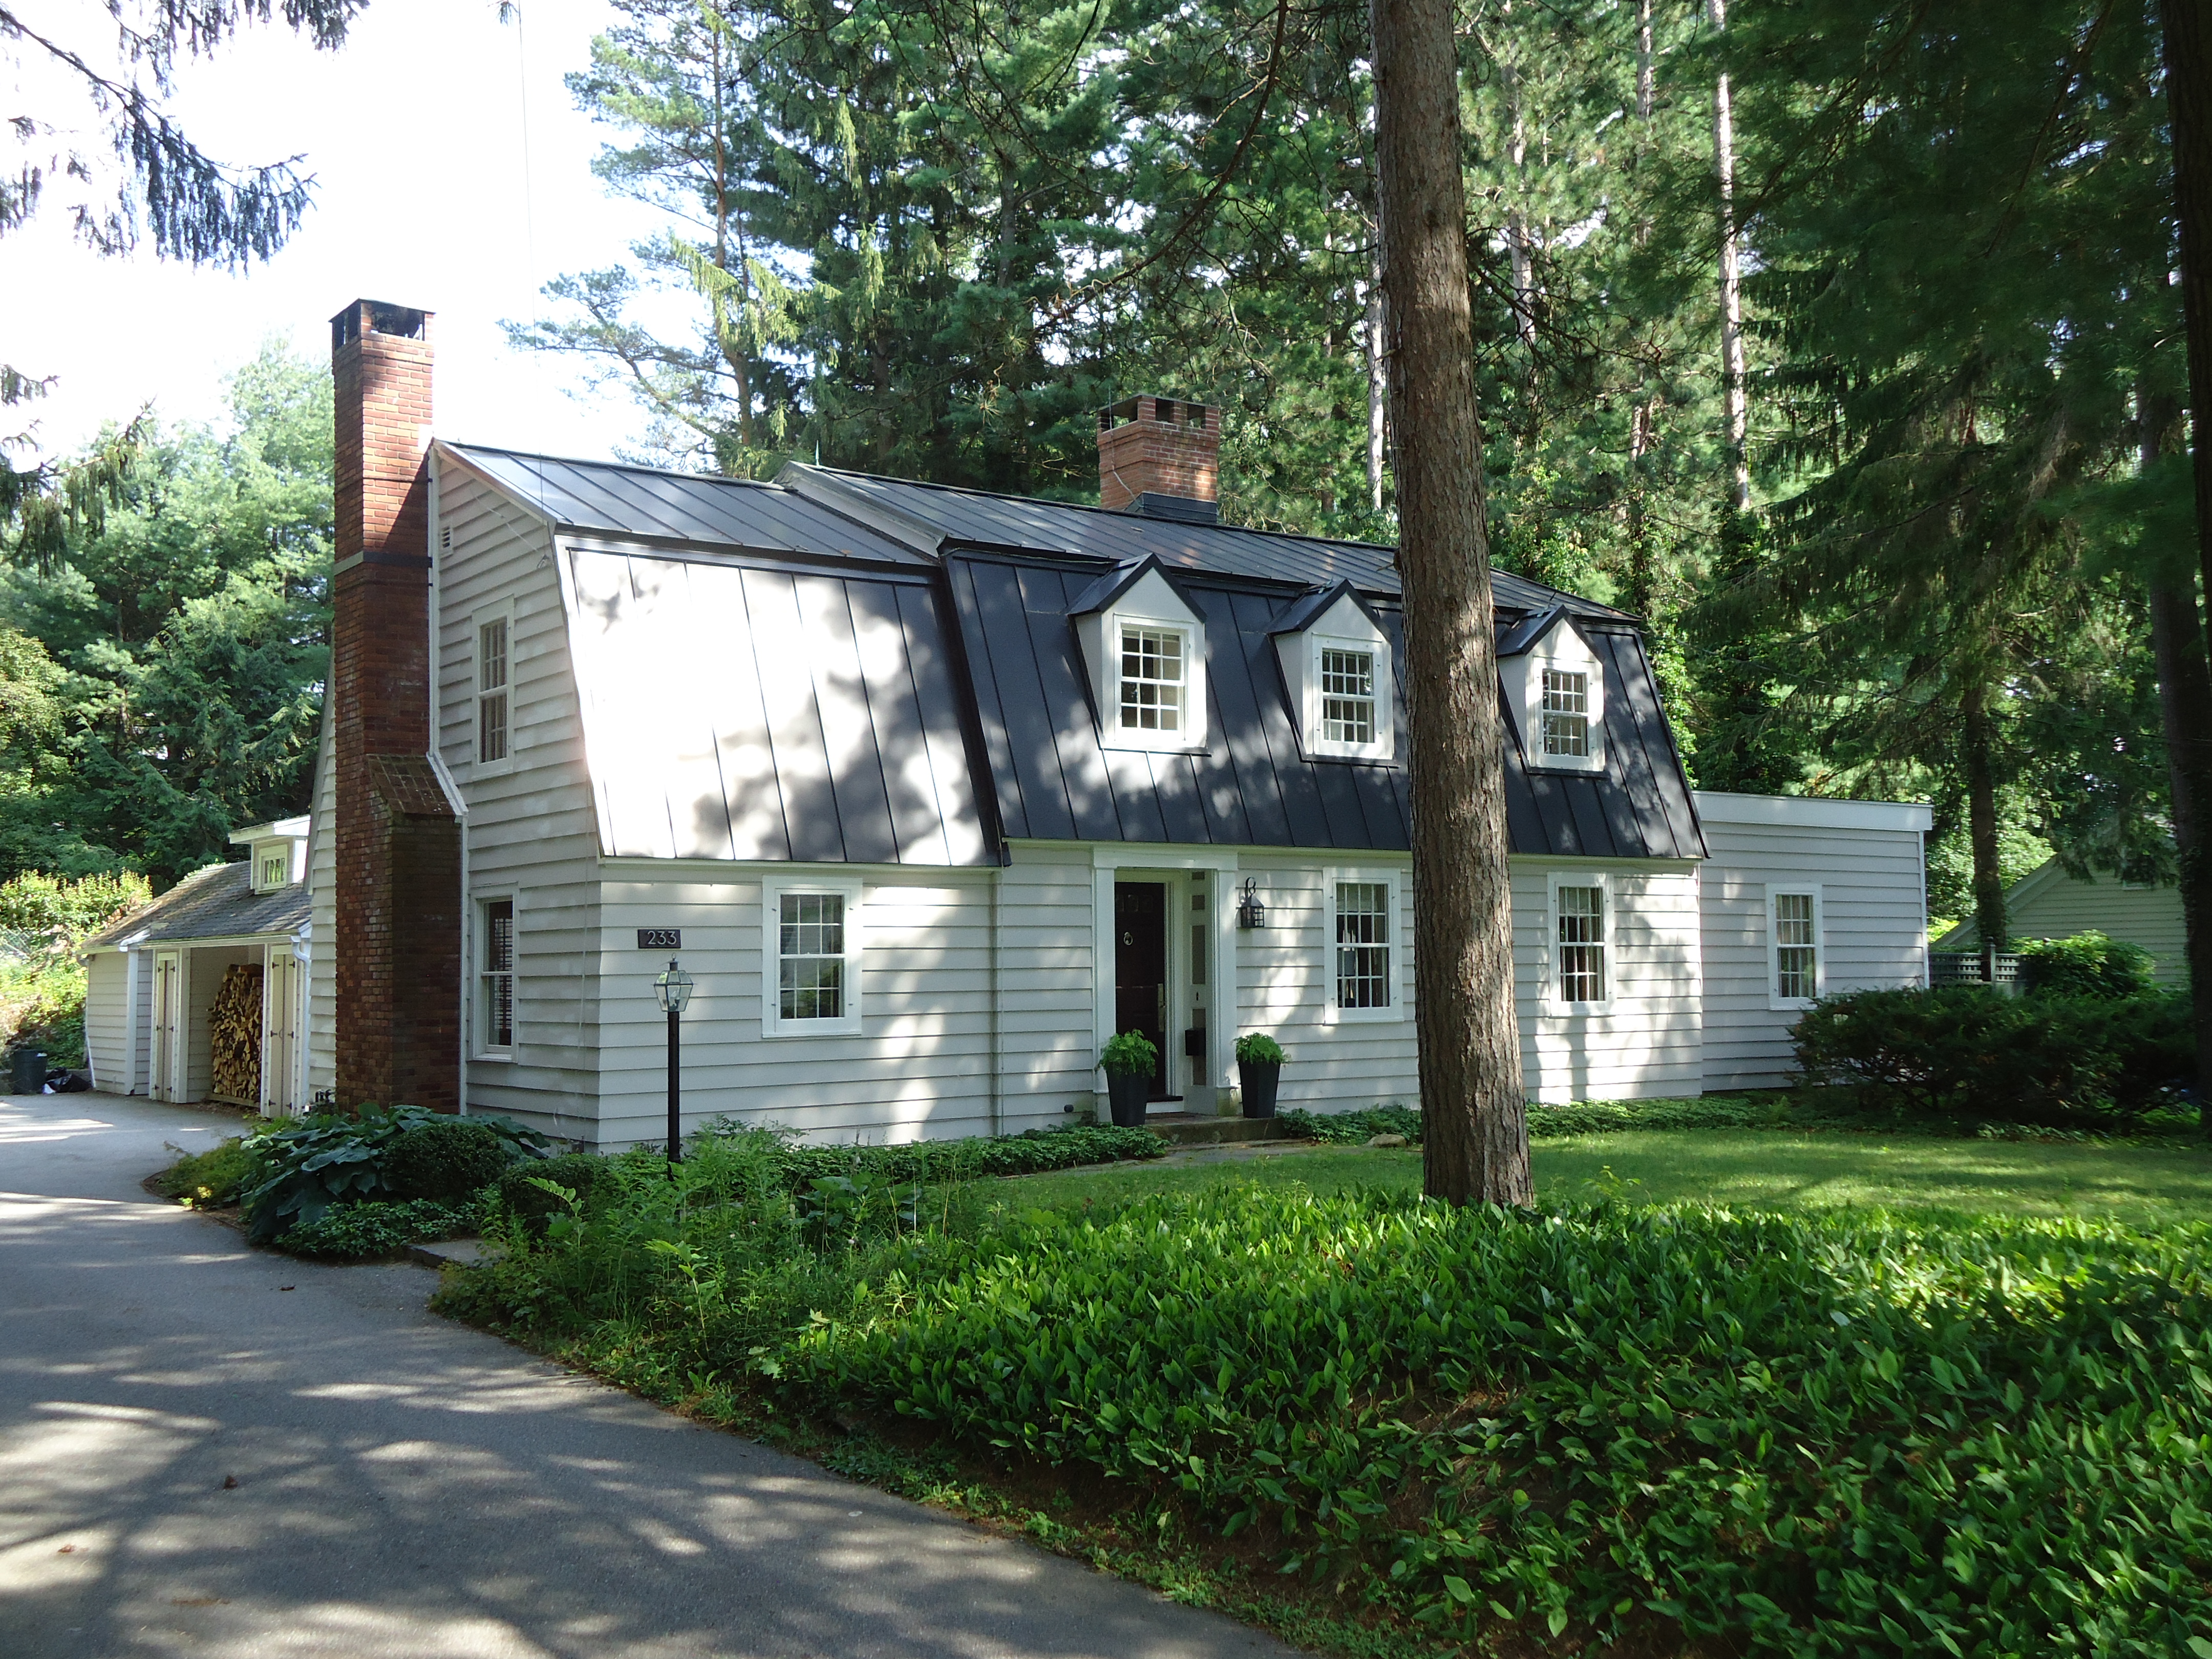 Single Family Home for Sale at Totally and Tastefully Renovated 233 Holmes Rd Pittsfield, Massachusetts 01201 United States